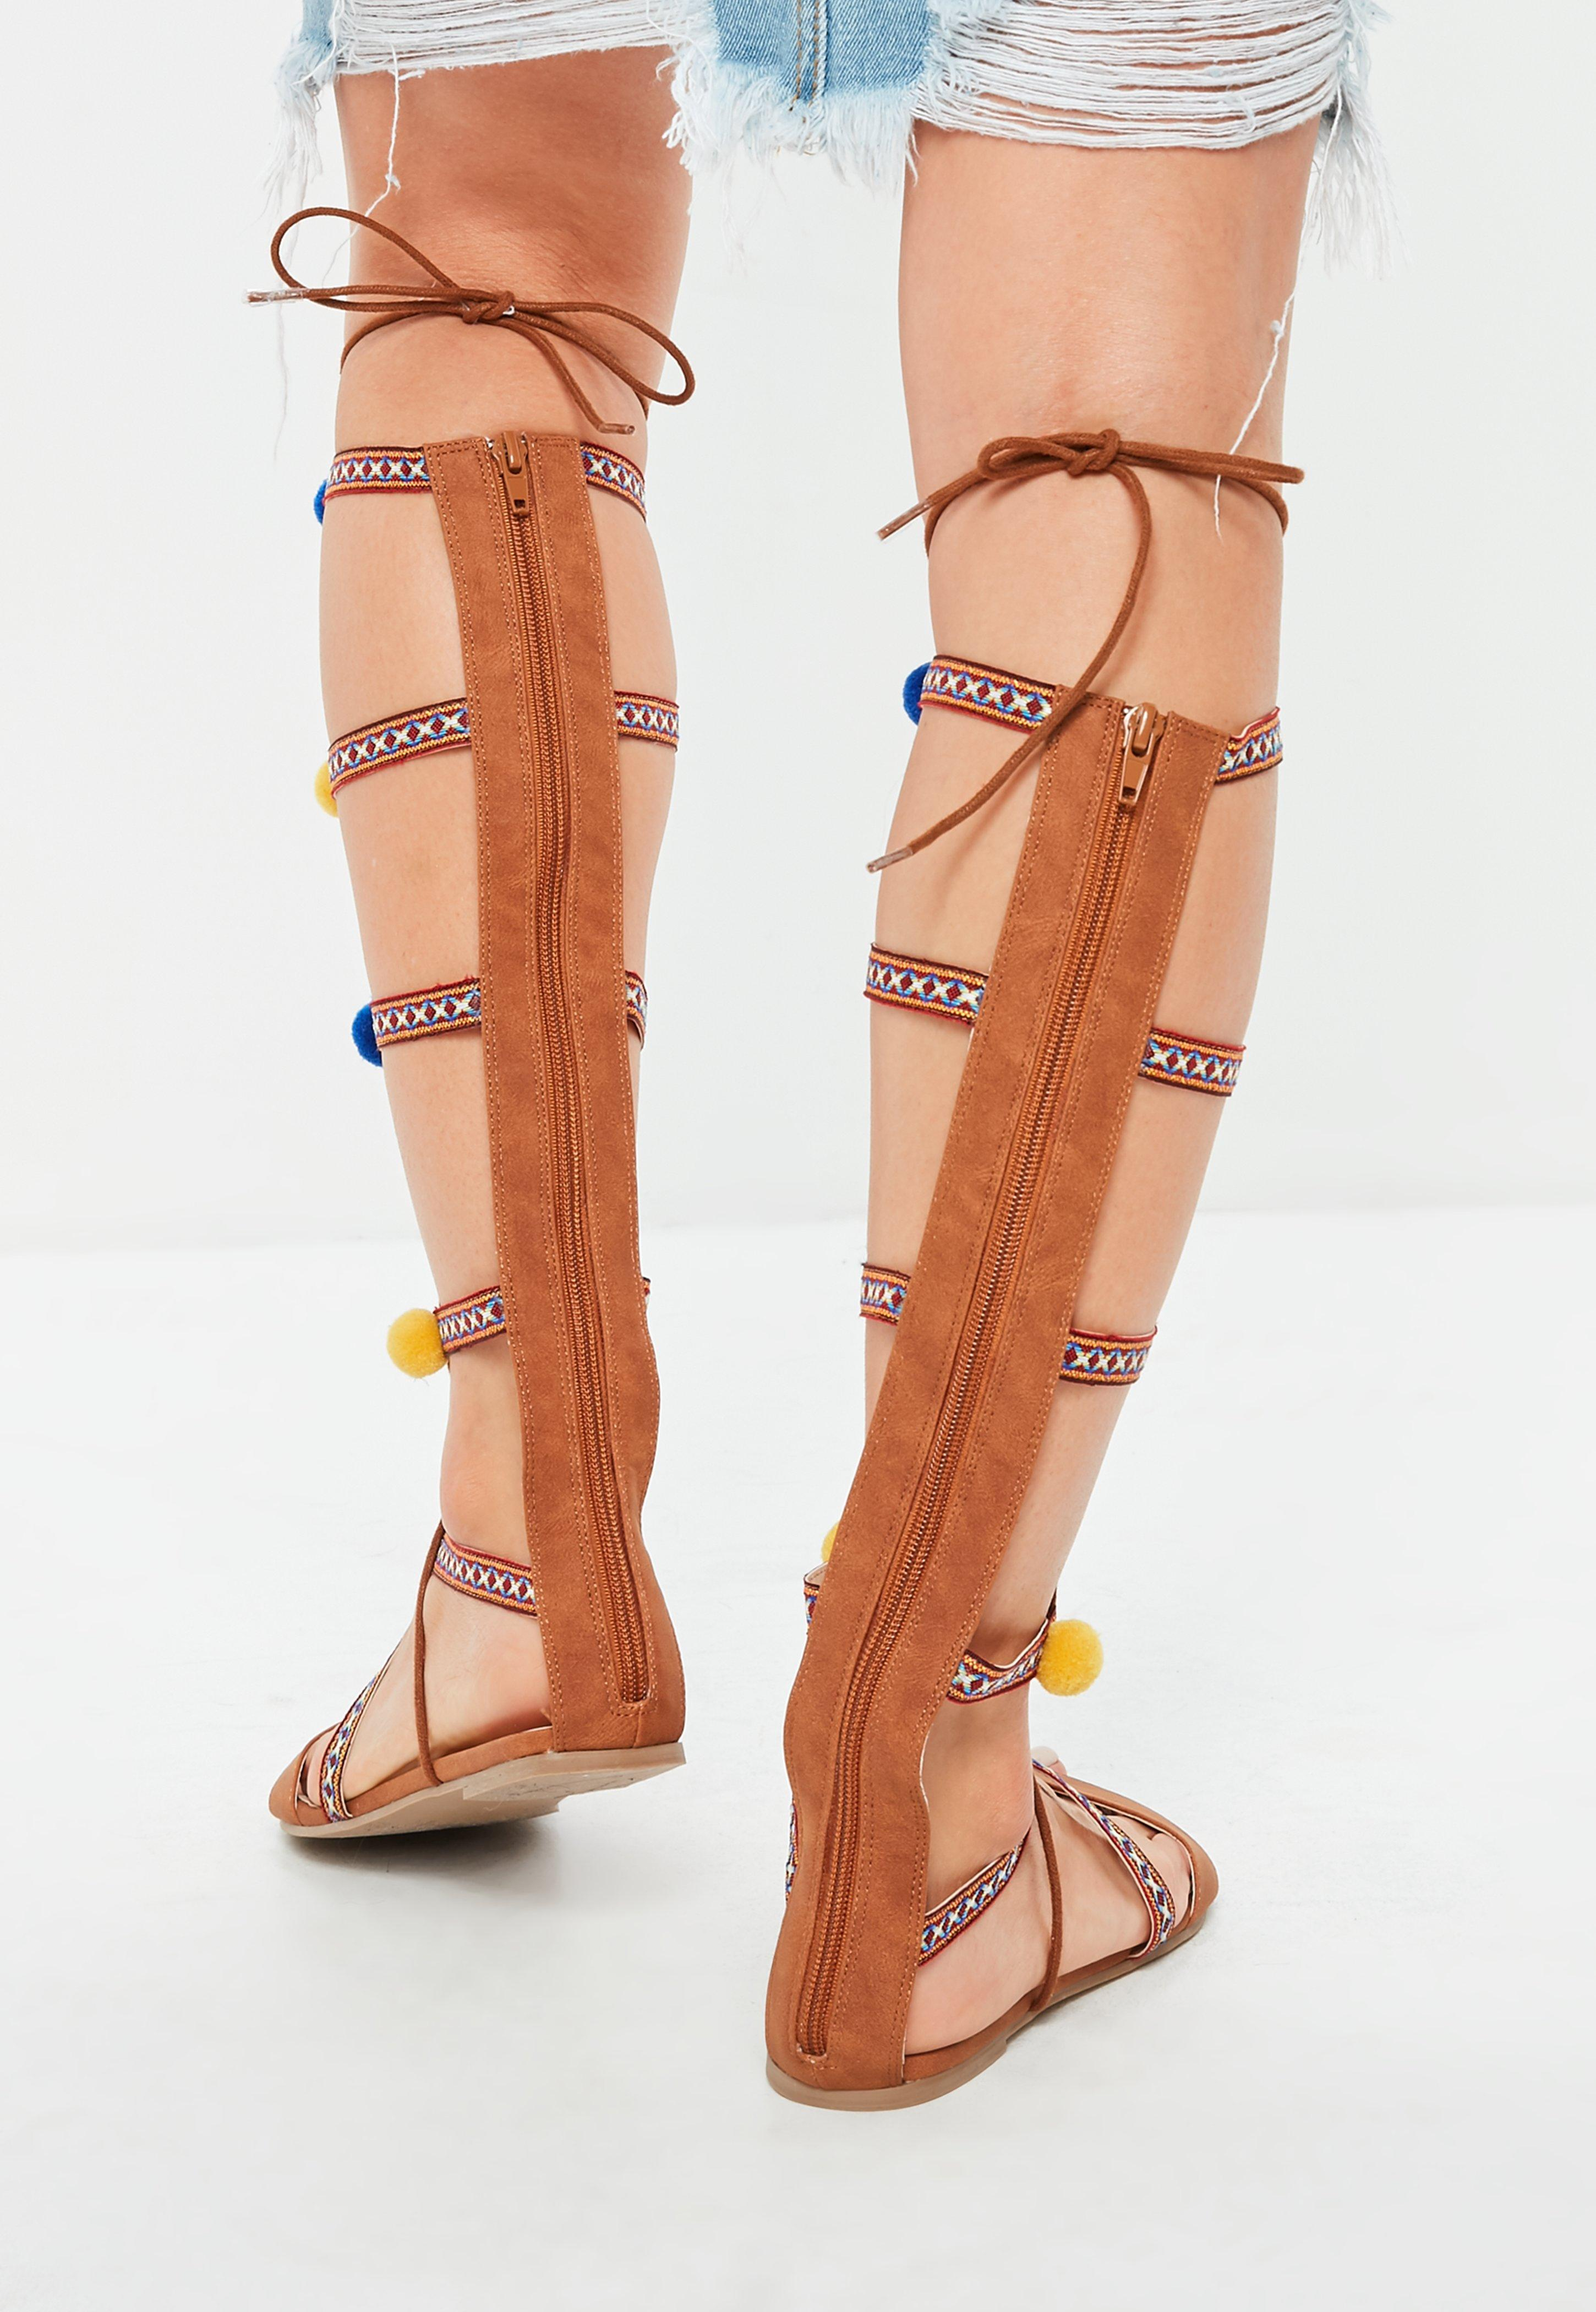 1e76a25e81a Missguided - Brown Pom Pom Embroidered Gladiator Sandals - Lyst. View  fullscreen